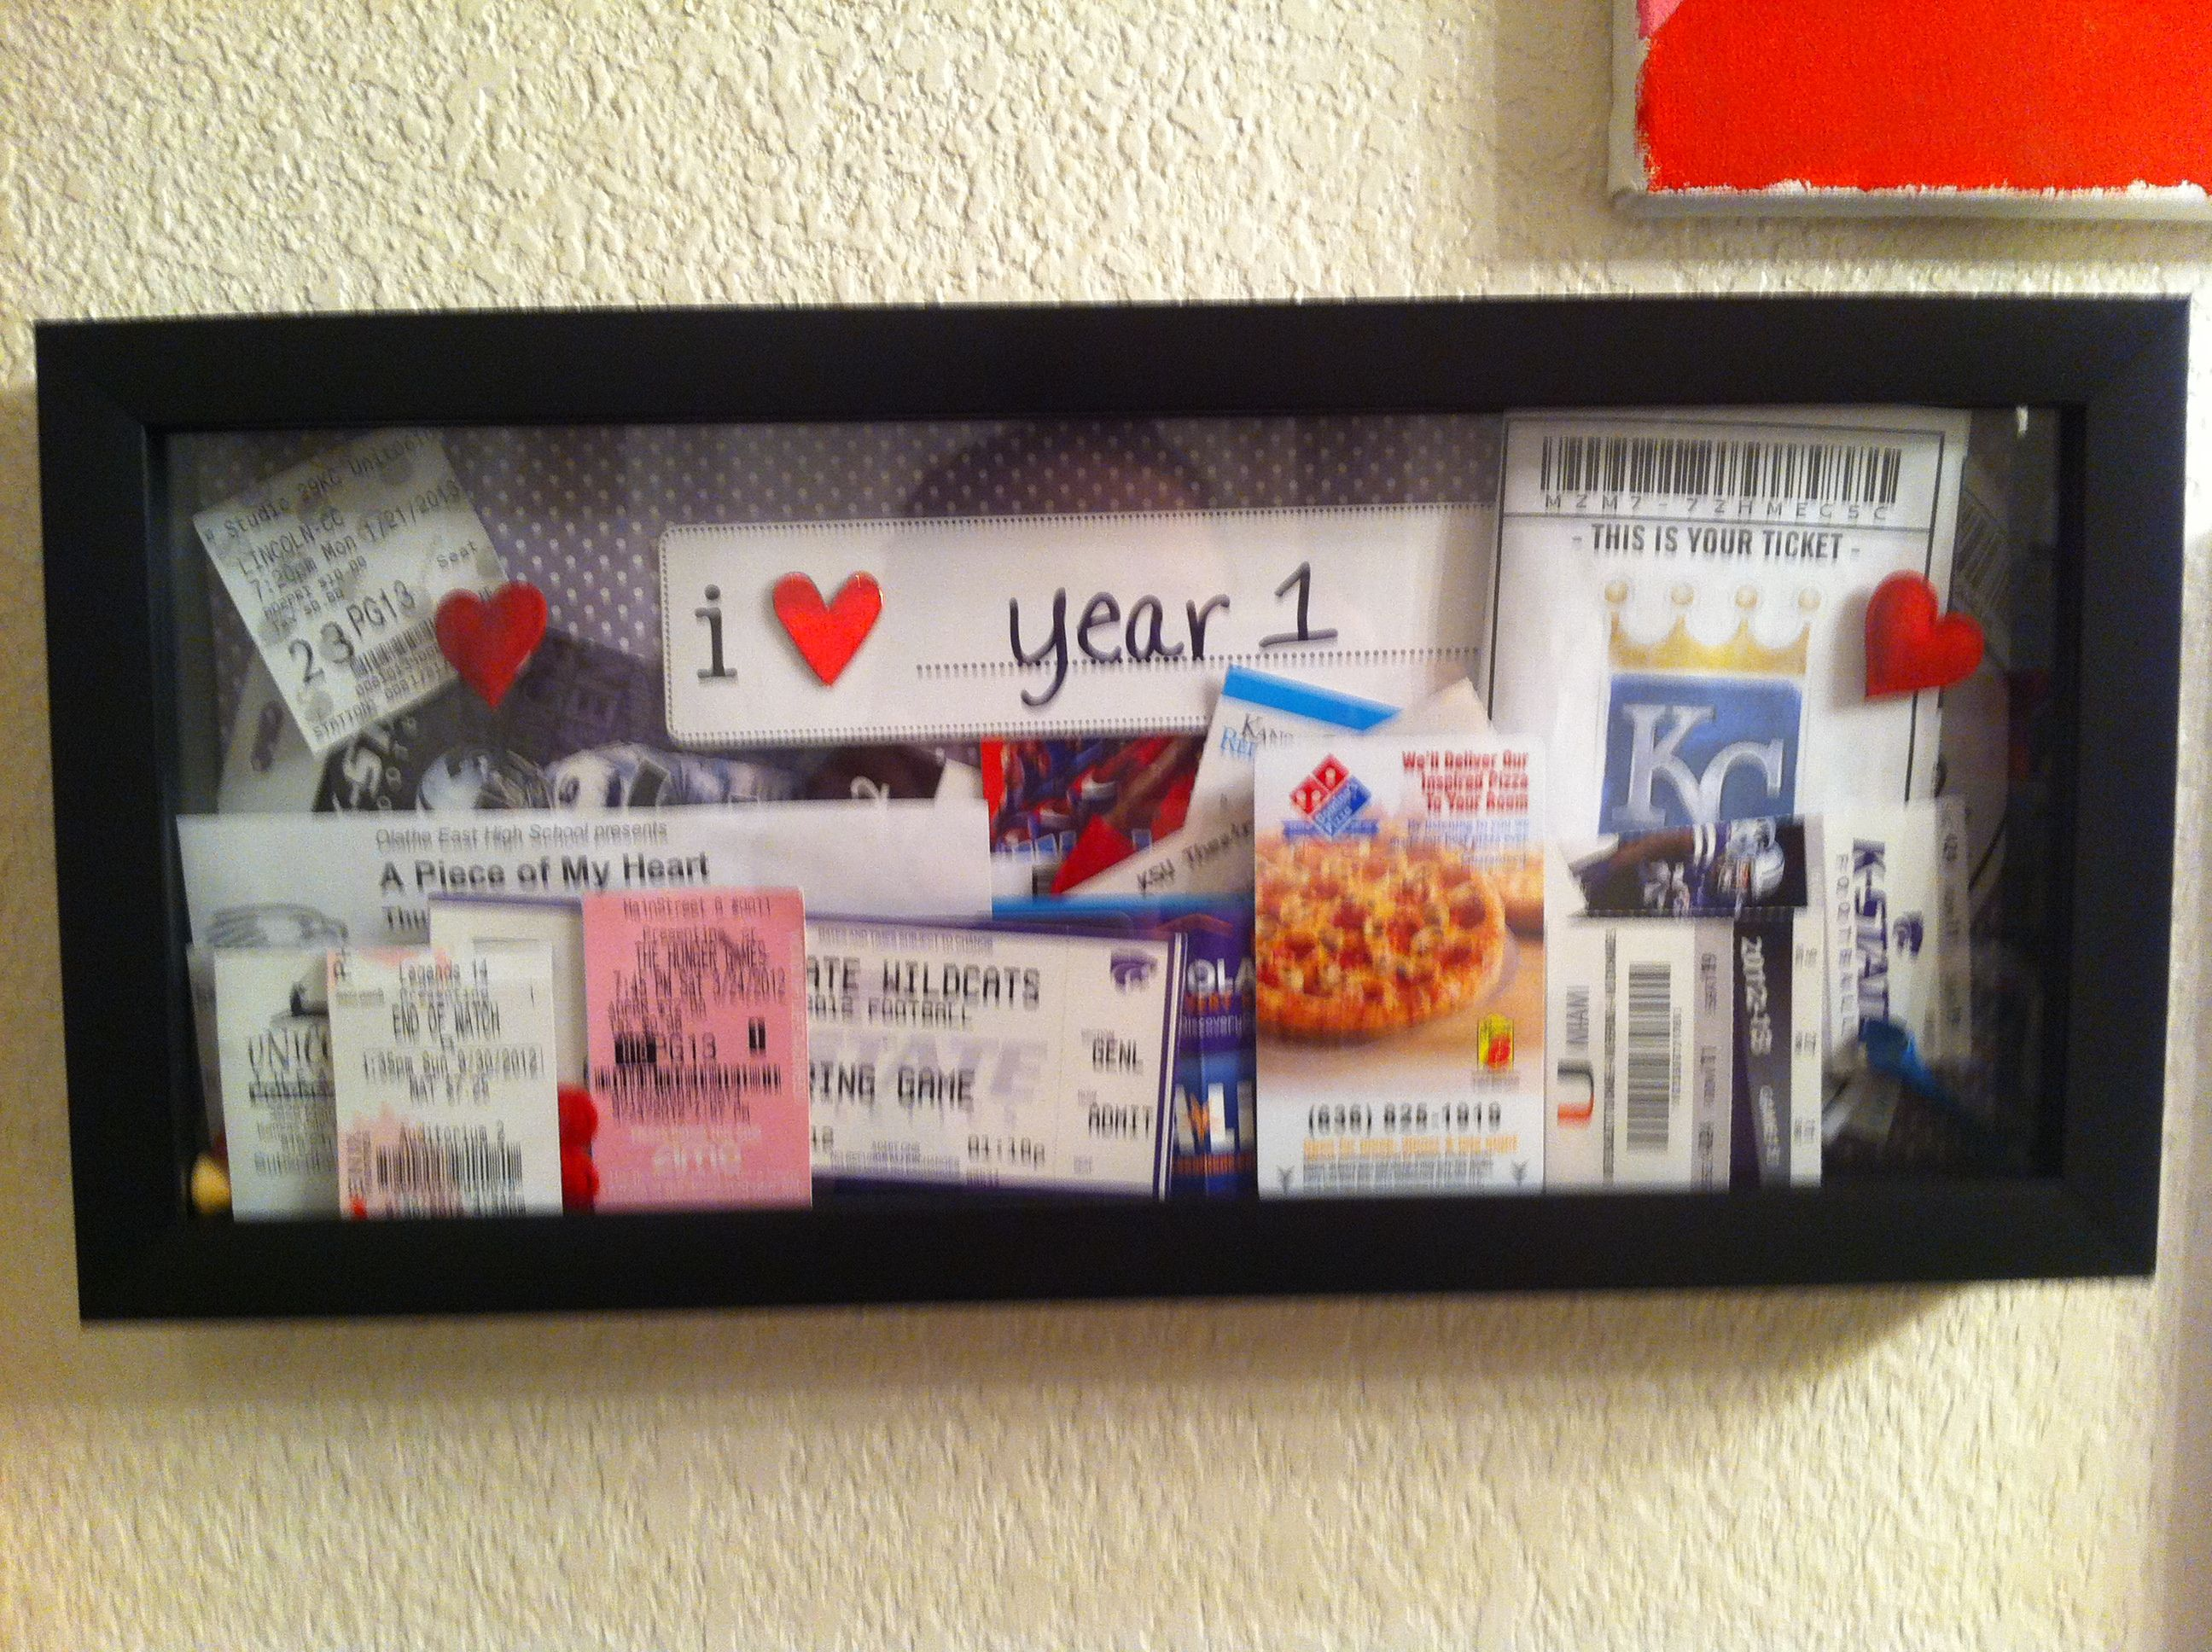 Scrapbook ideas one year anniversary - Anniversary Present For Ryan Shadow Box With Ticket Stubs From Our First Year Together